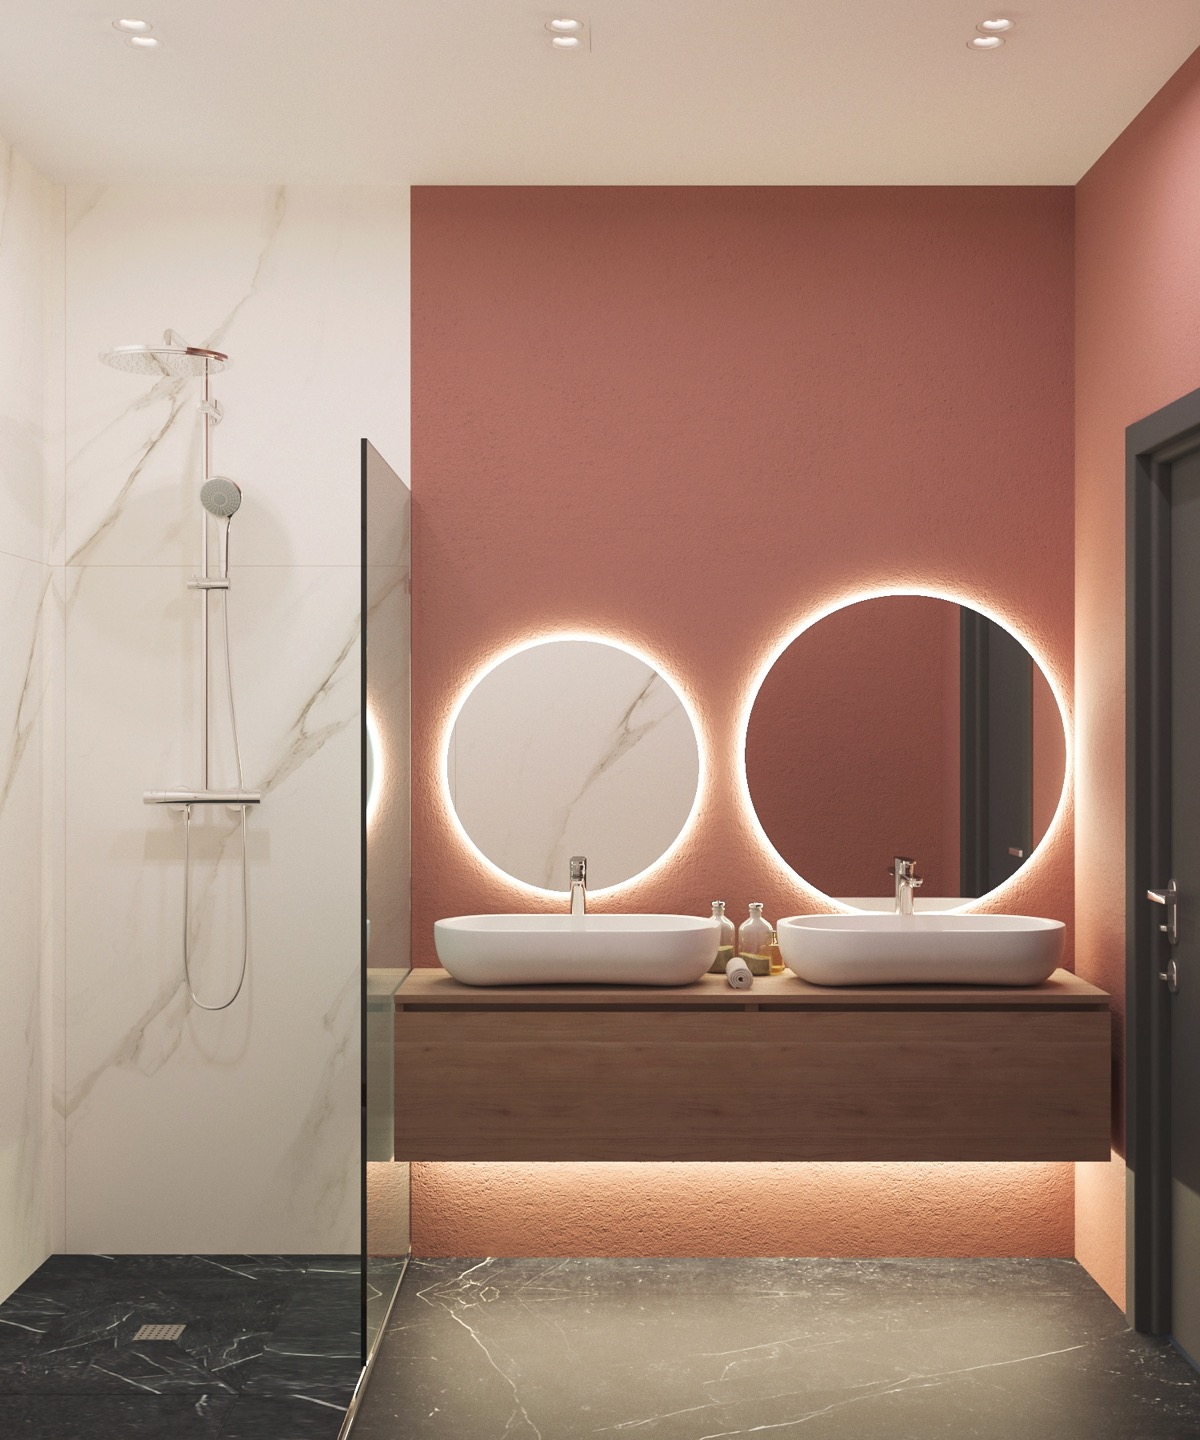 51 Pink Bathrooms With Tips Photos And Accessories To Help You Decorate Yours,Ikea Malm Twin Bed With Drawers Instructions